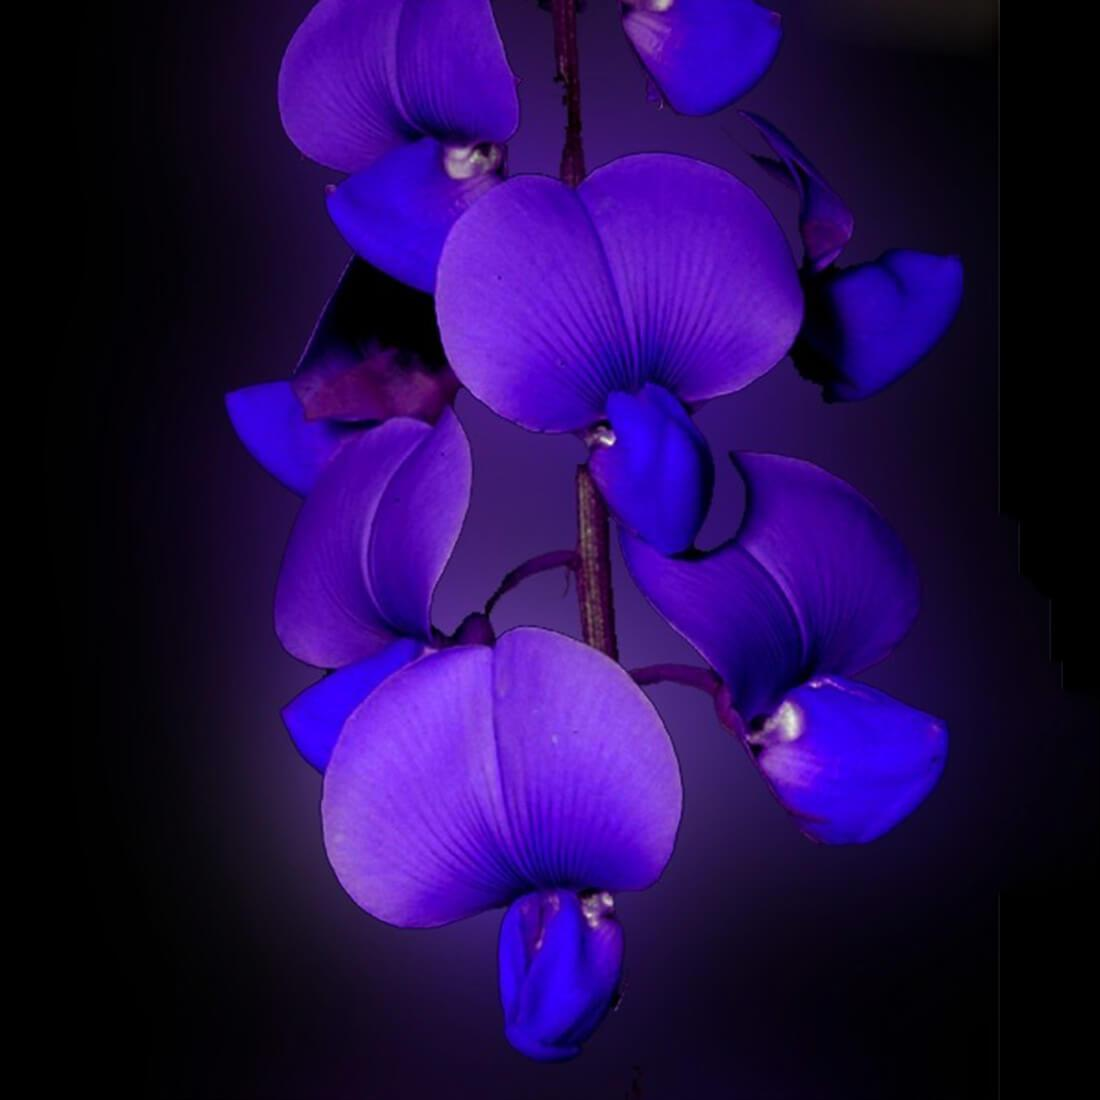 Orchid Live Wallpaper For Android